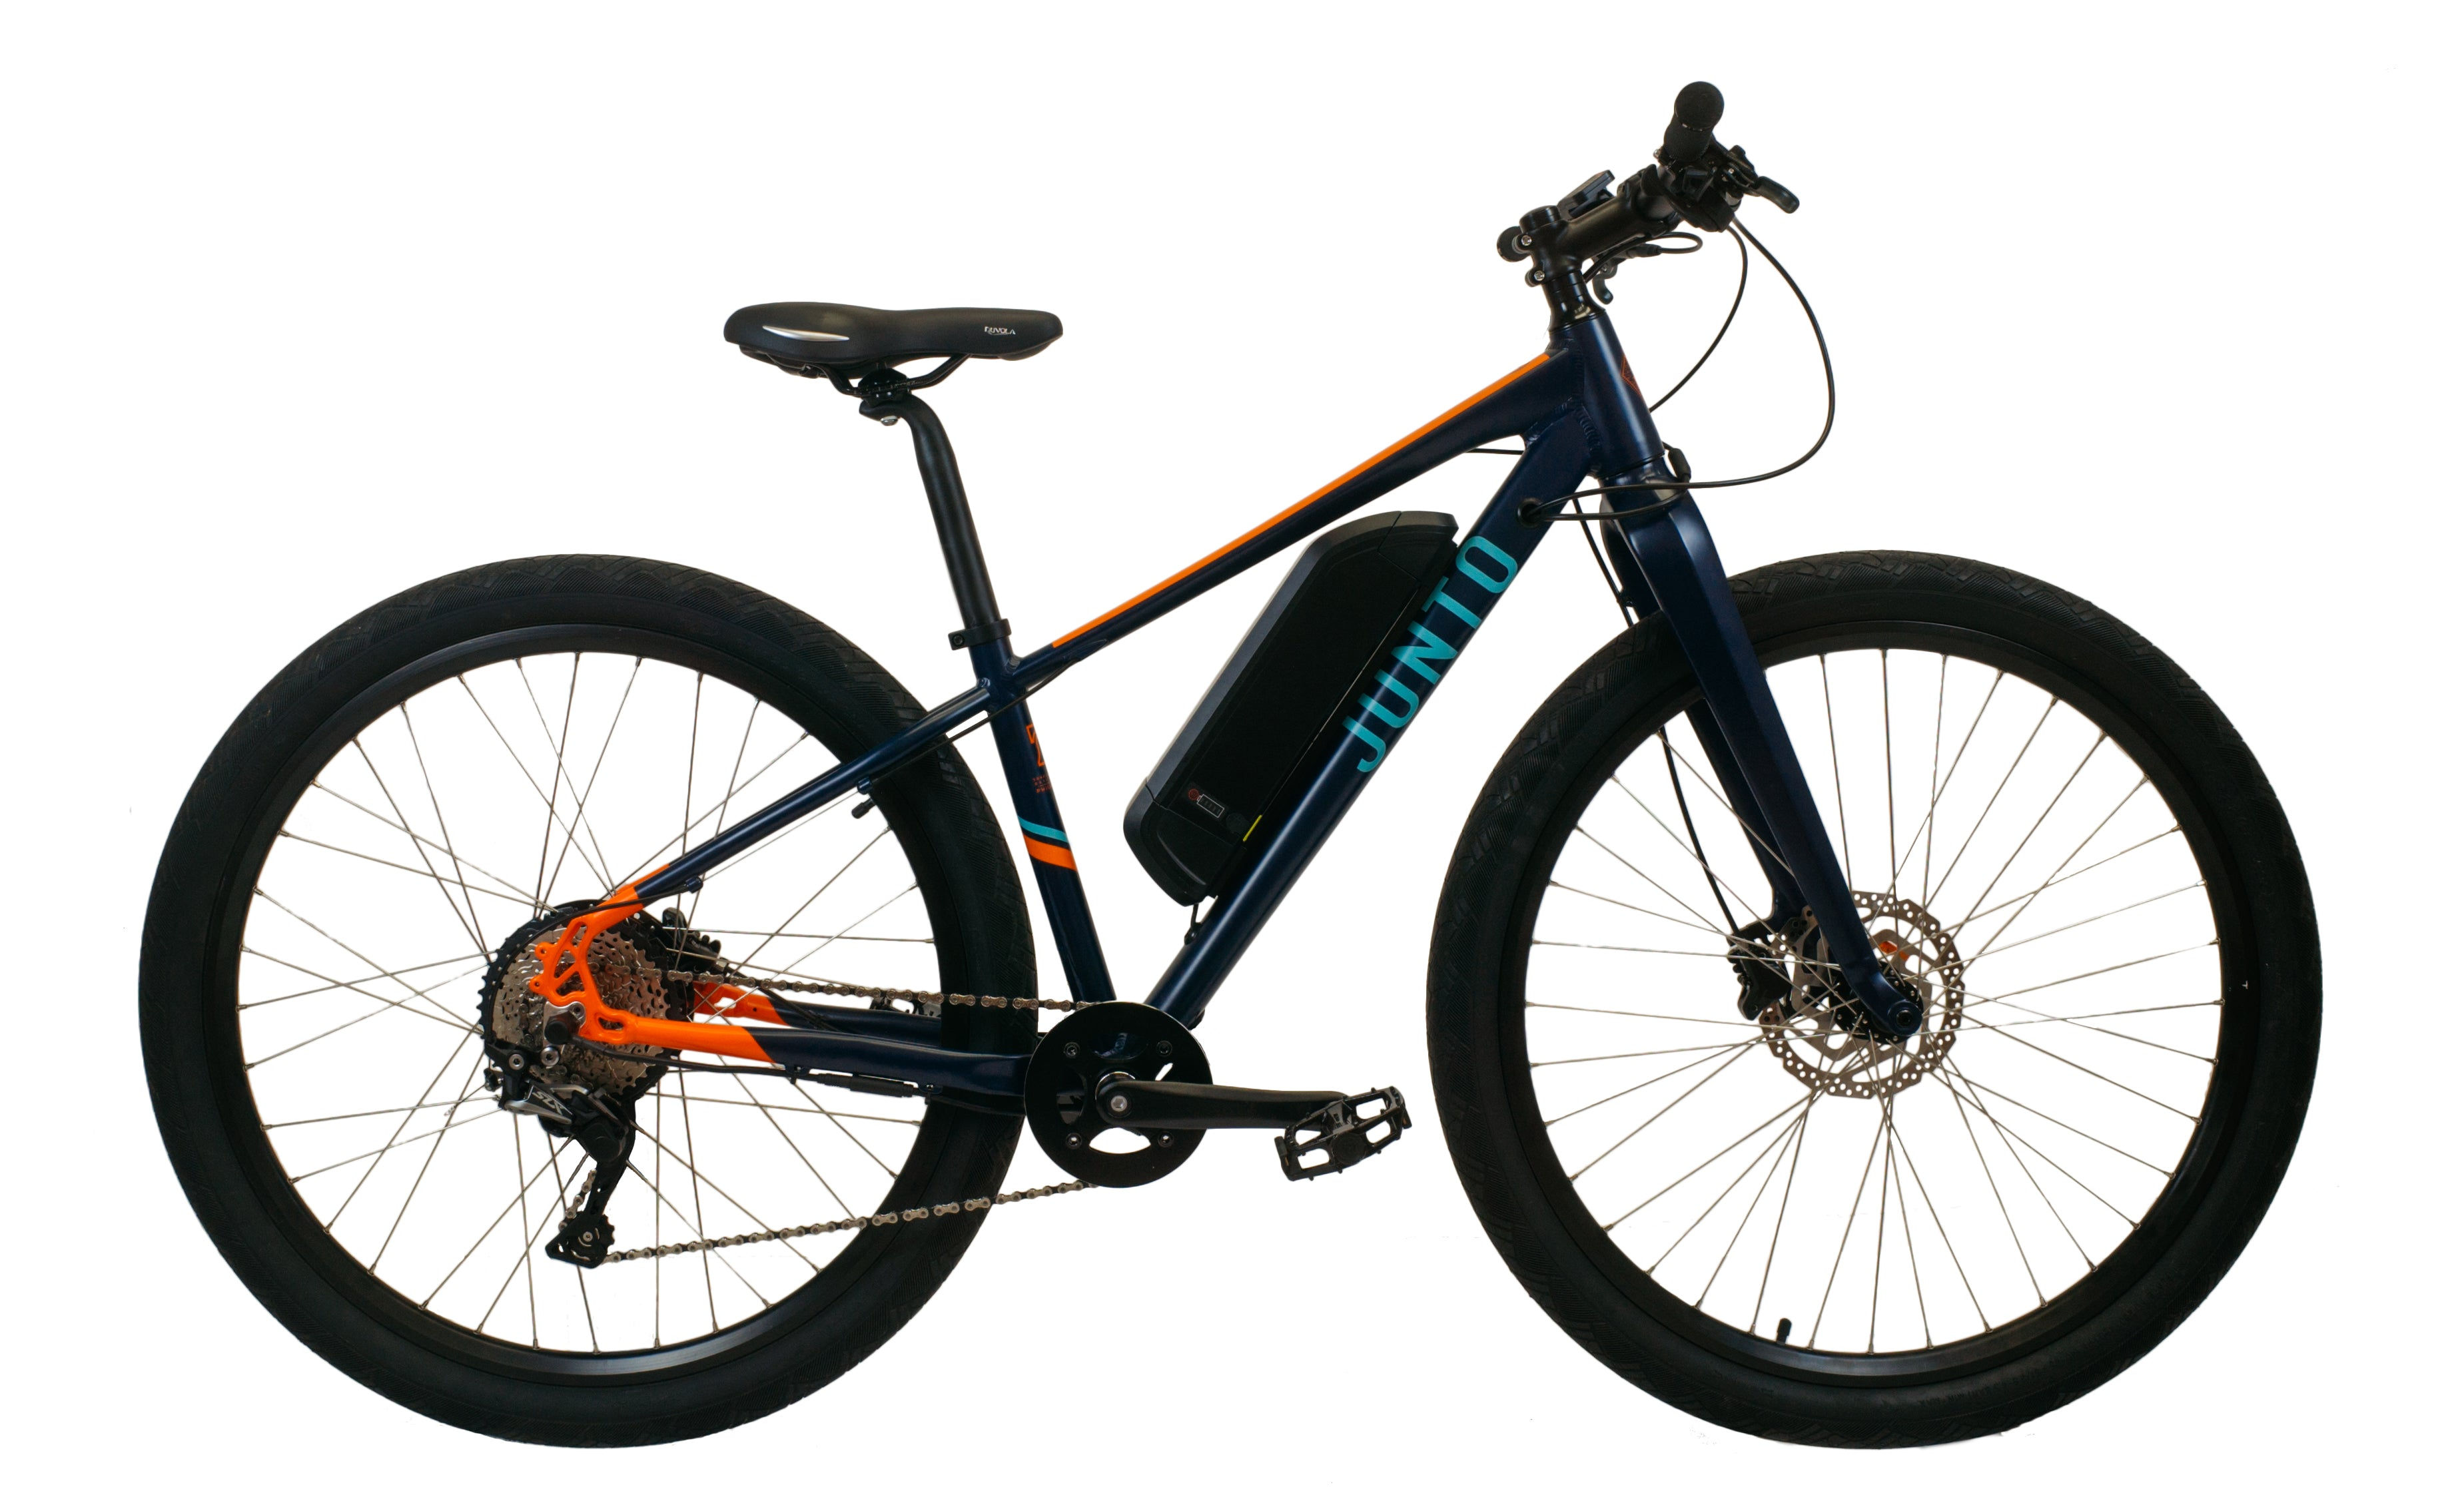 E-Bikes: 4 Models You Should Know About